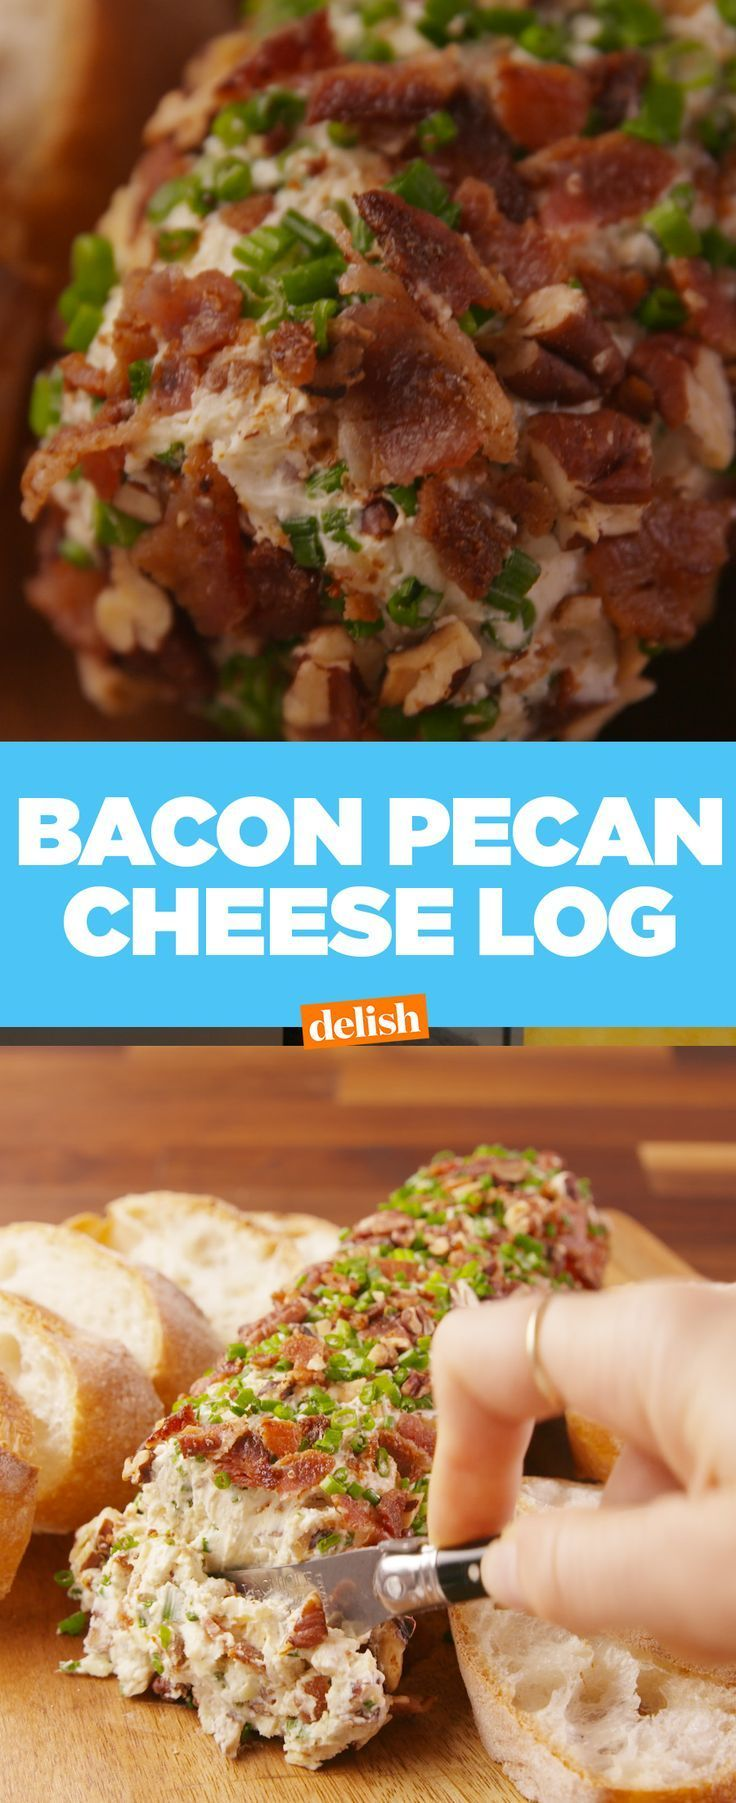 Bacon Pecan Cheese Log - -